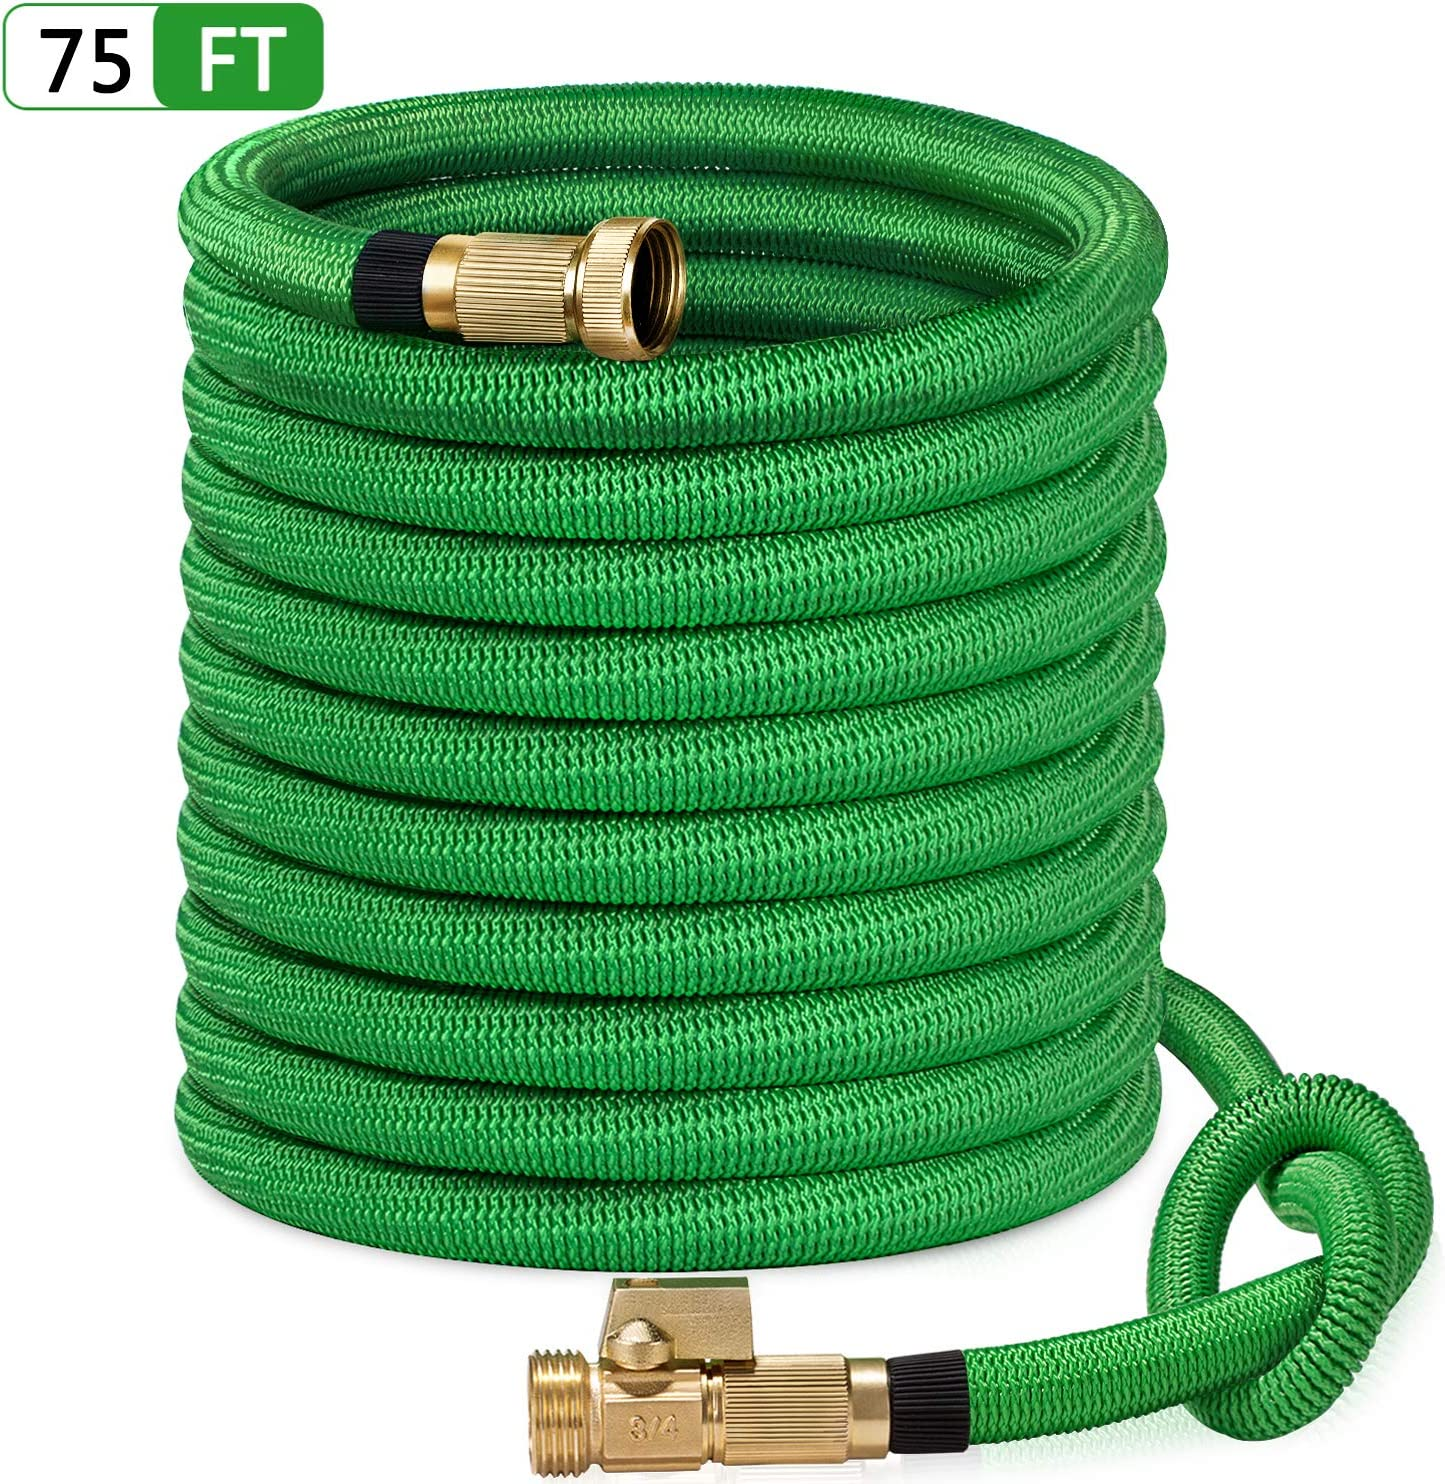 "SunGreen 75ft Garden Hose, All New 2019 Expandable Water Hose with 3/4"" Solid Brass Fittings, Extra Strength Fabric - Flexible Expanding Hose with Free Storage Sack"